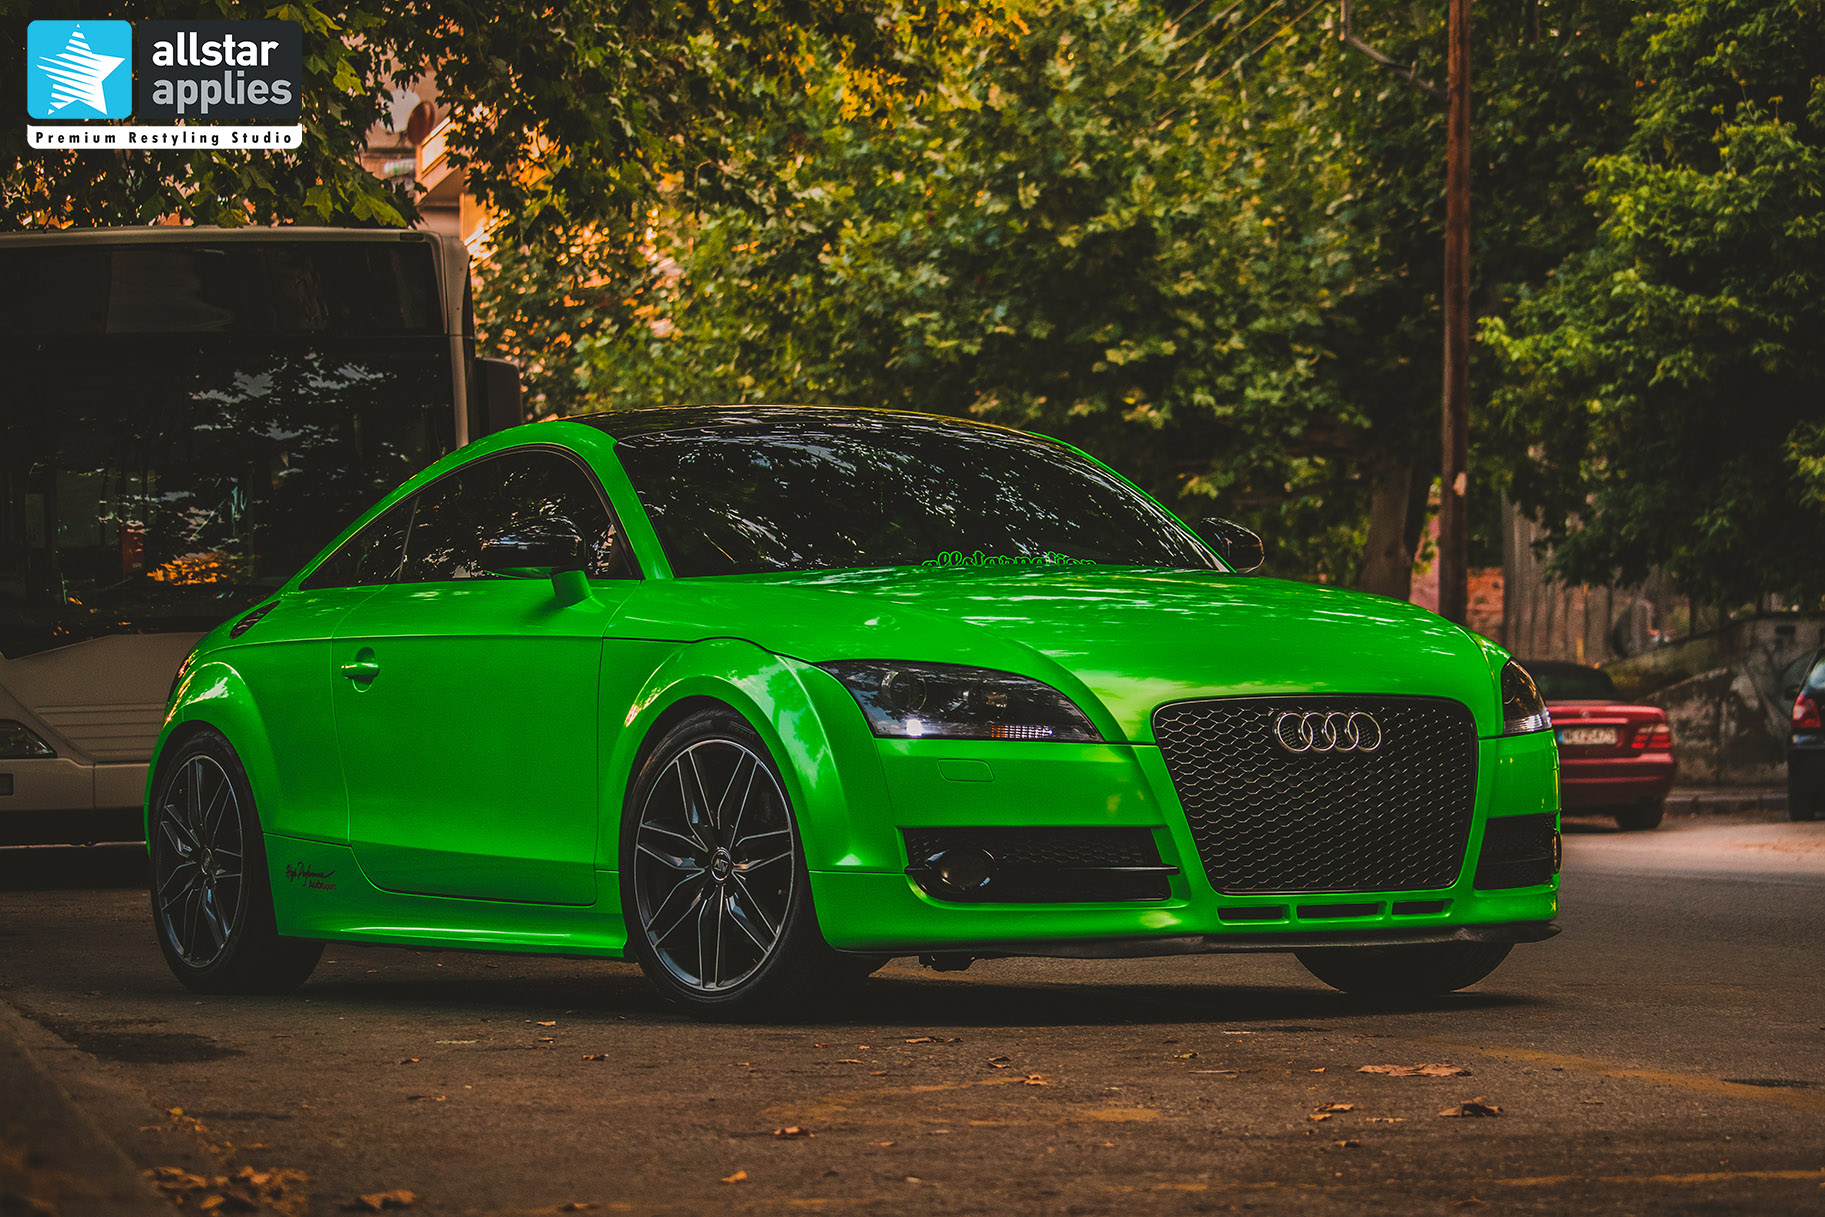 GYMKHANA GREEN AUDI TT ALLSTAR APPLIES 1